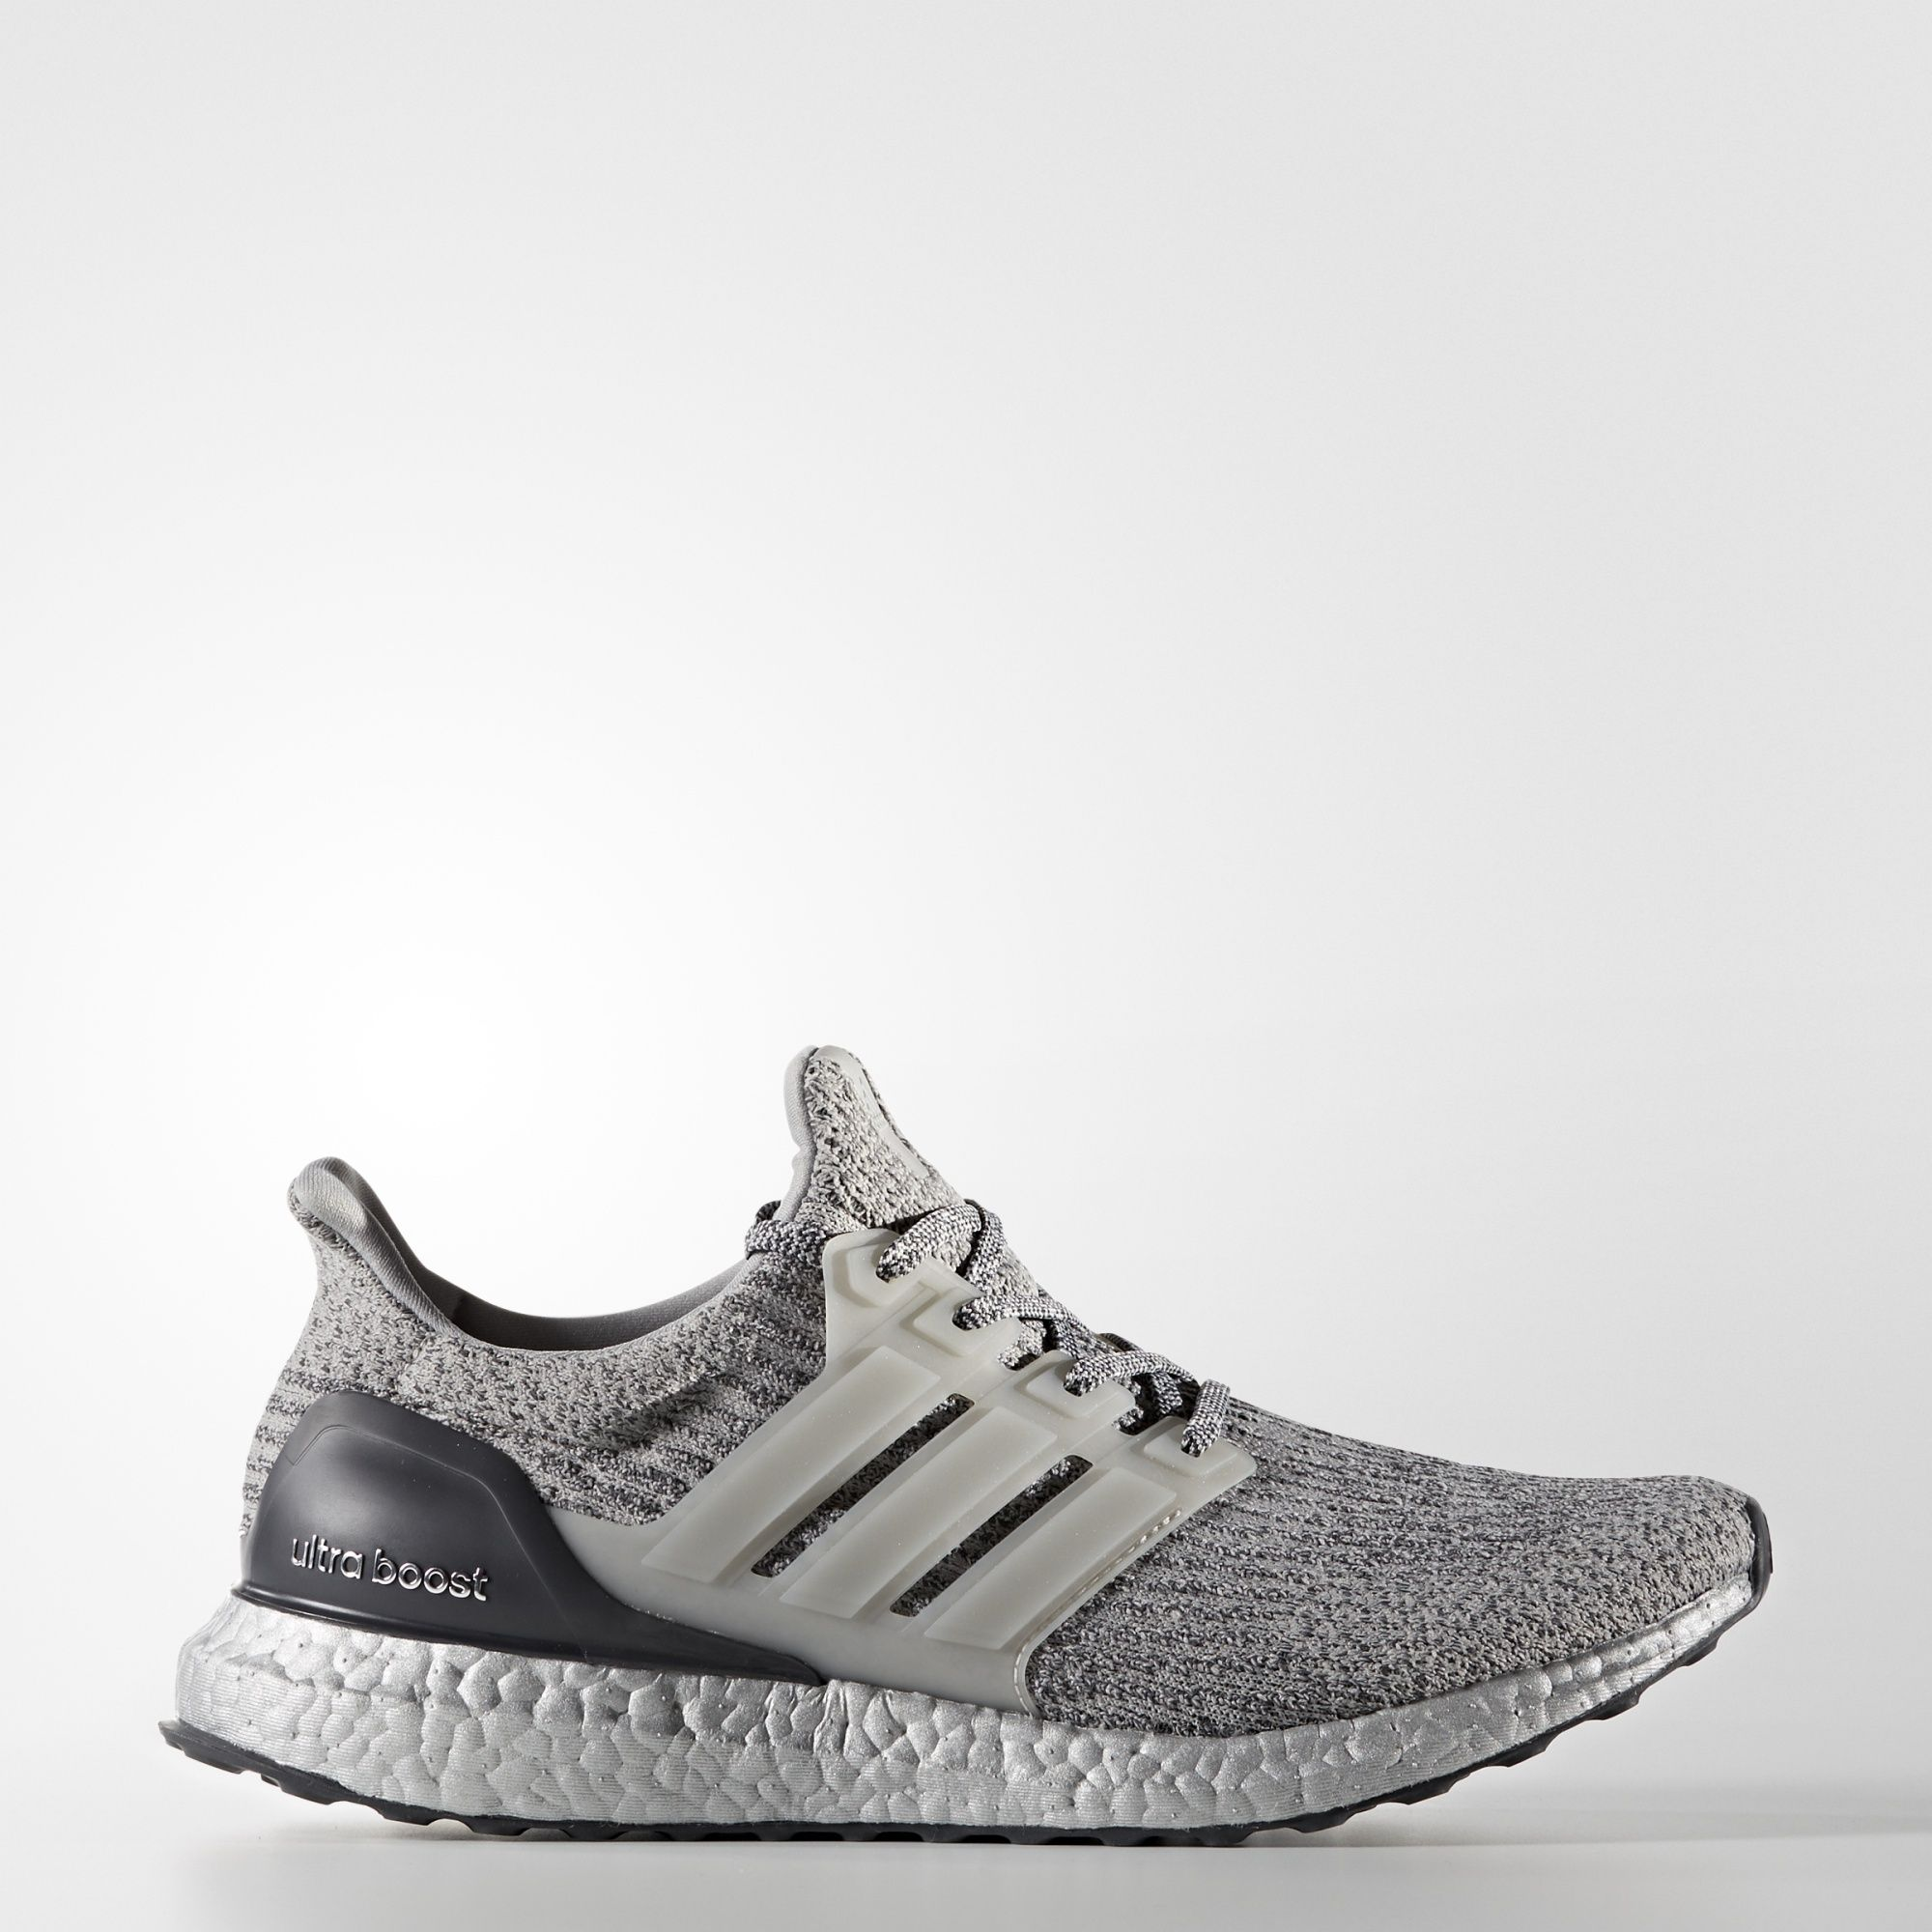 Explore Boost Shoes, Ultraboost, and more!